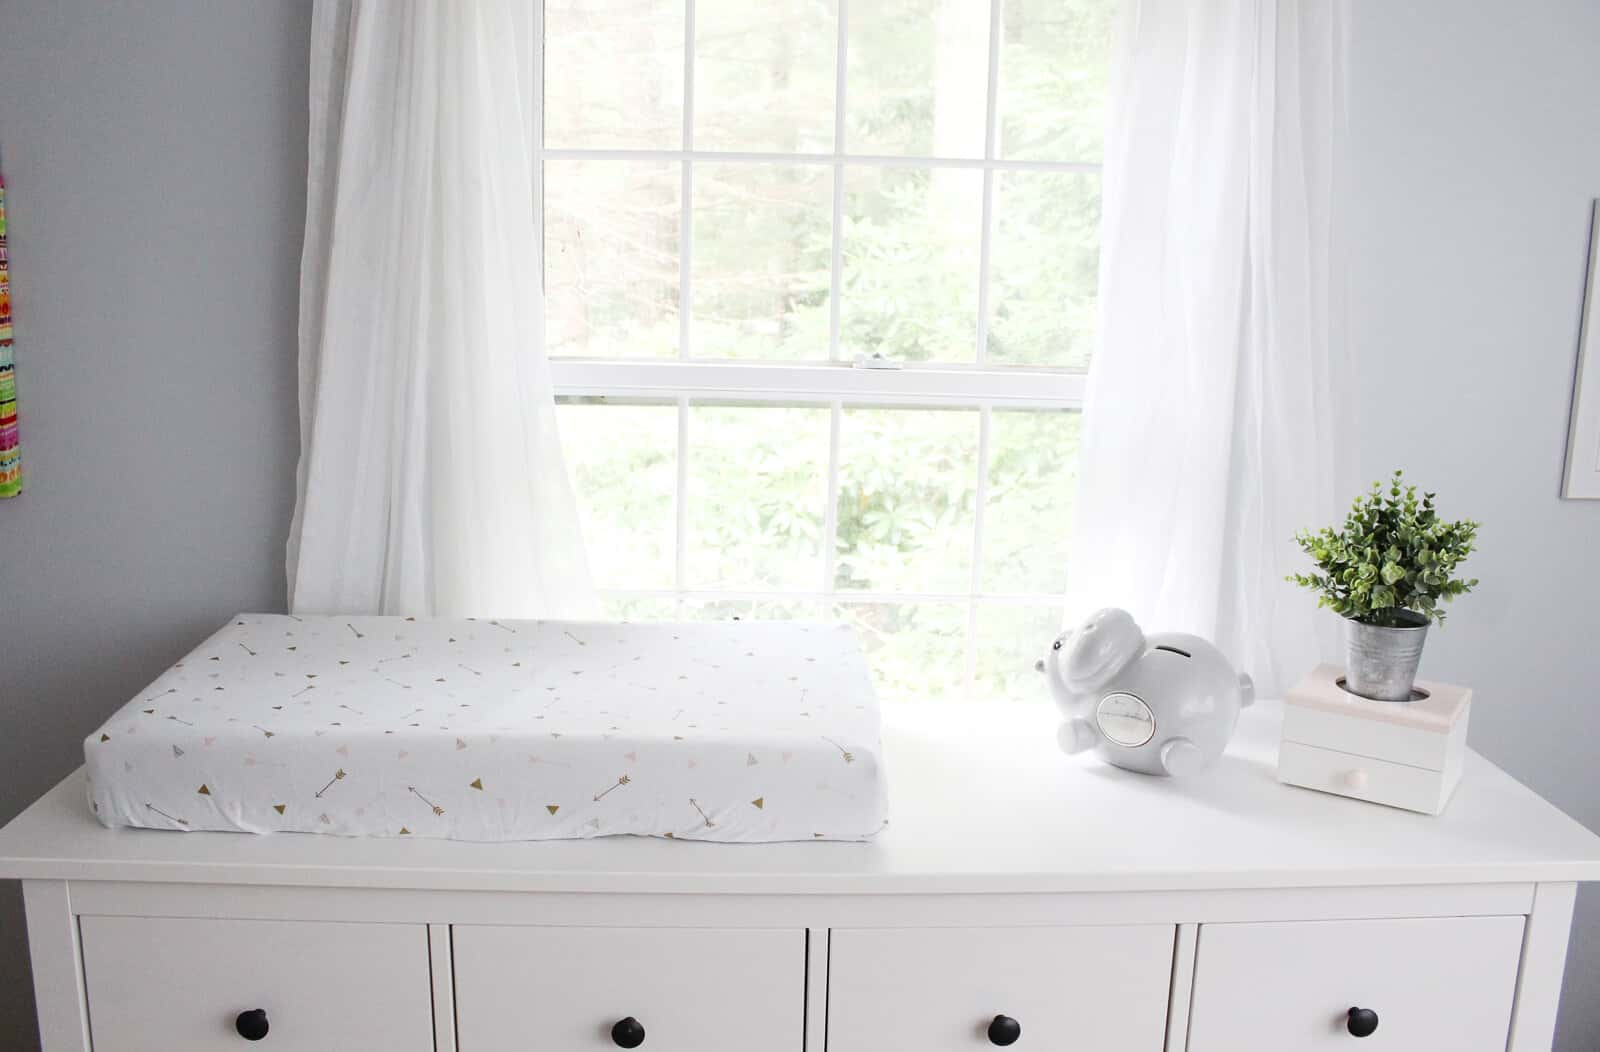 Baby changing pad on white dresser.